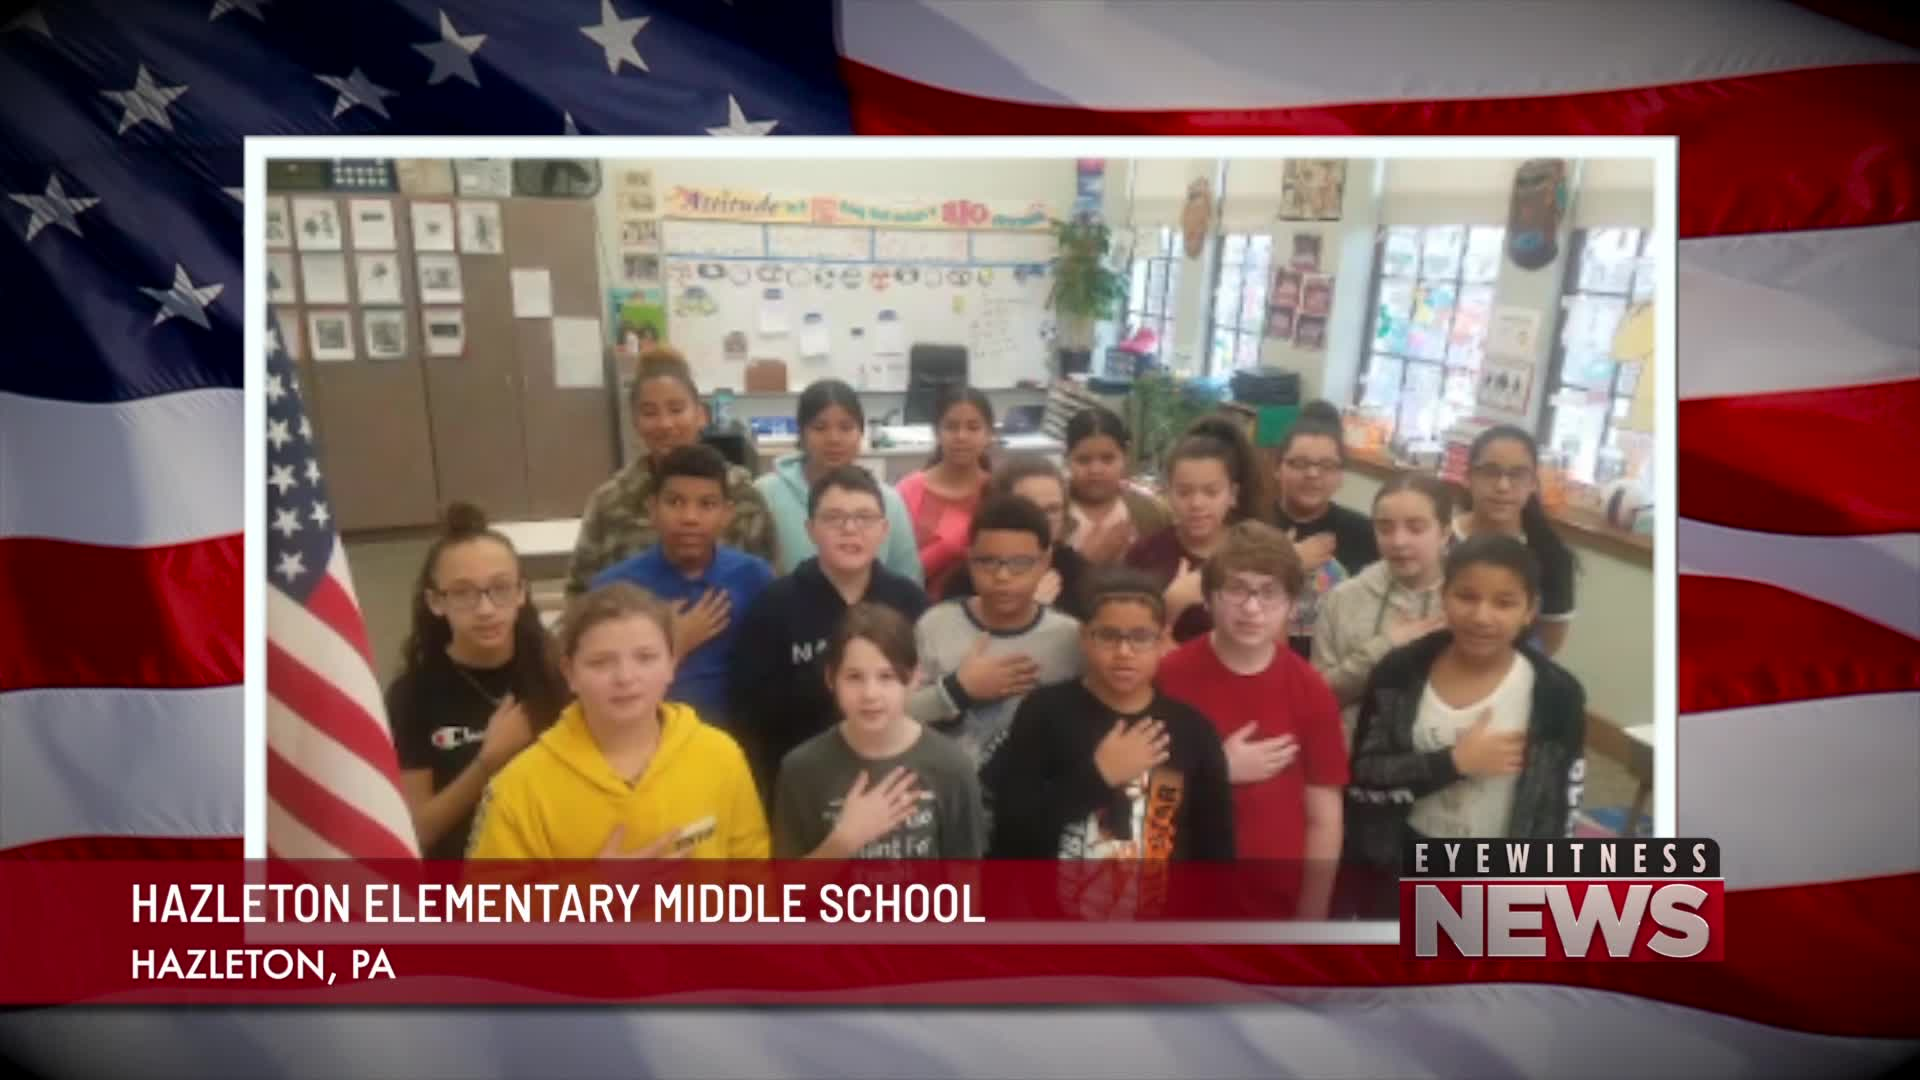 HAZLETON ELEMENTARY MIDDLE SCHOOL PLEDGE